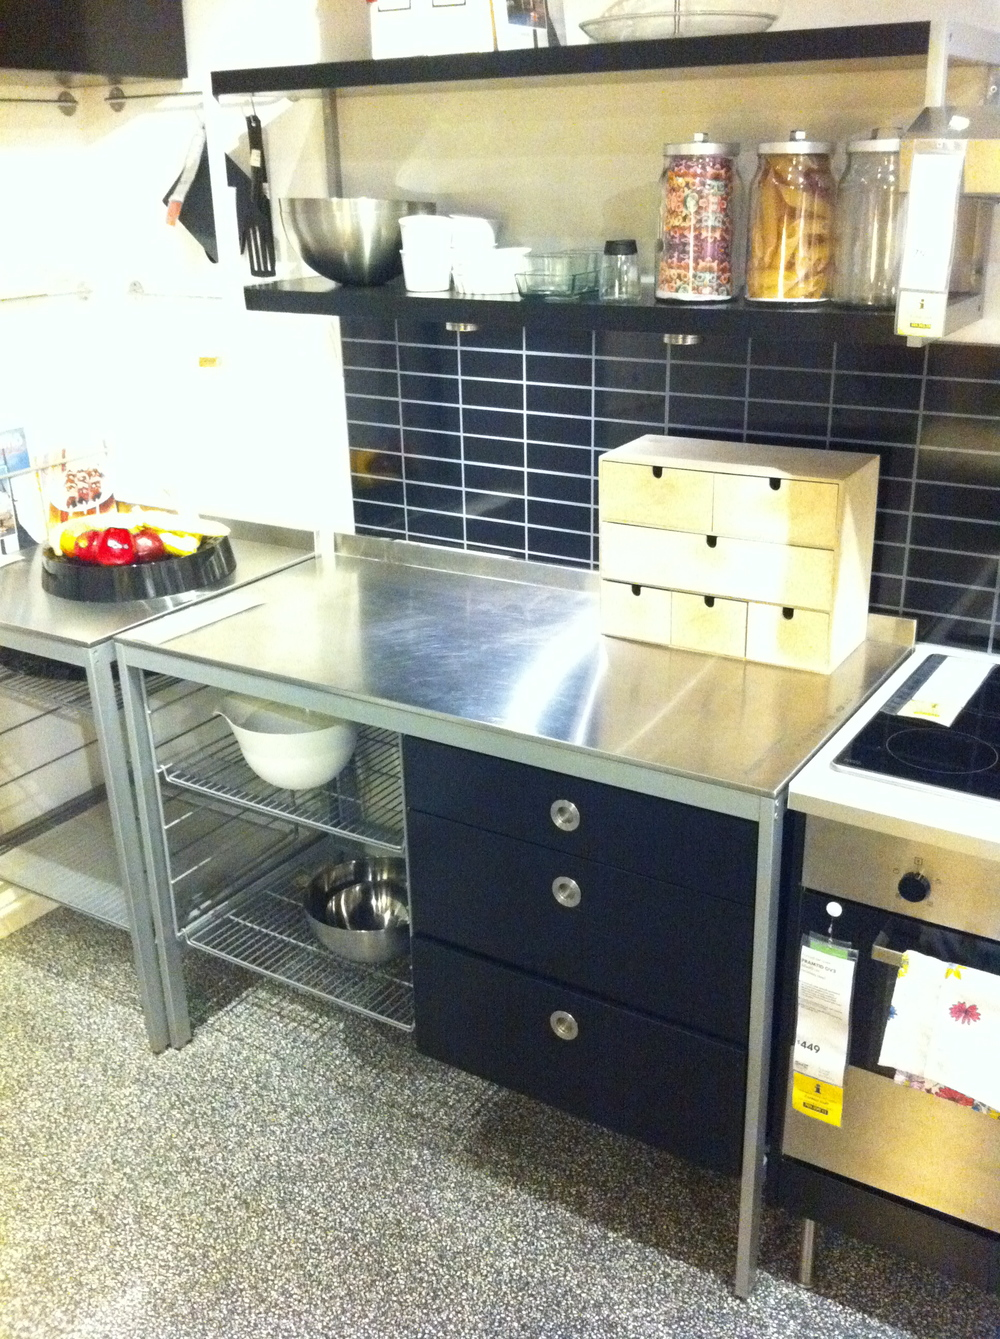 The under bench draws and cupboards are going to be great in the workhshop